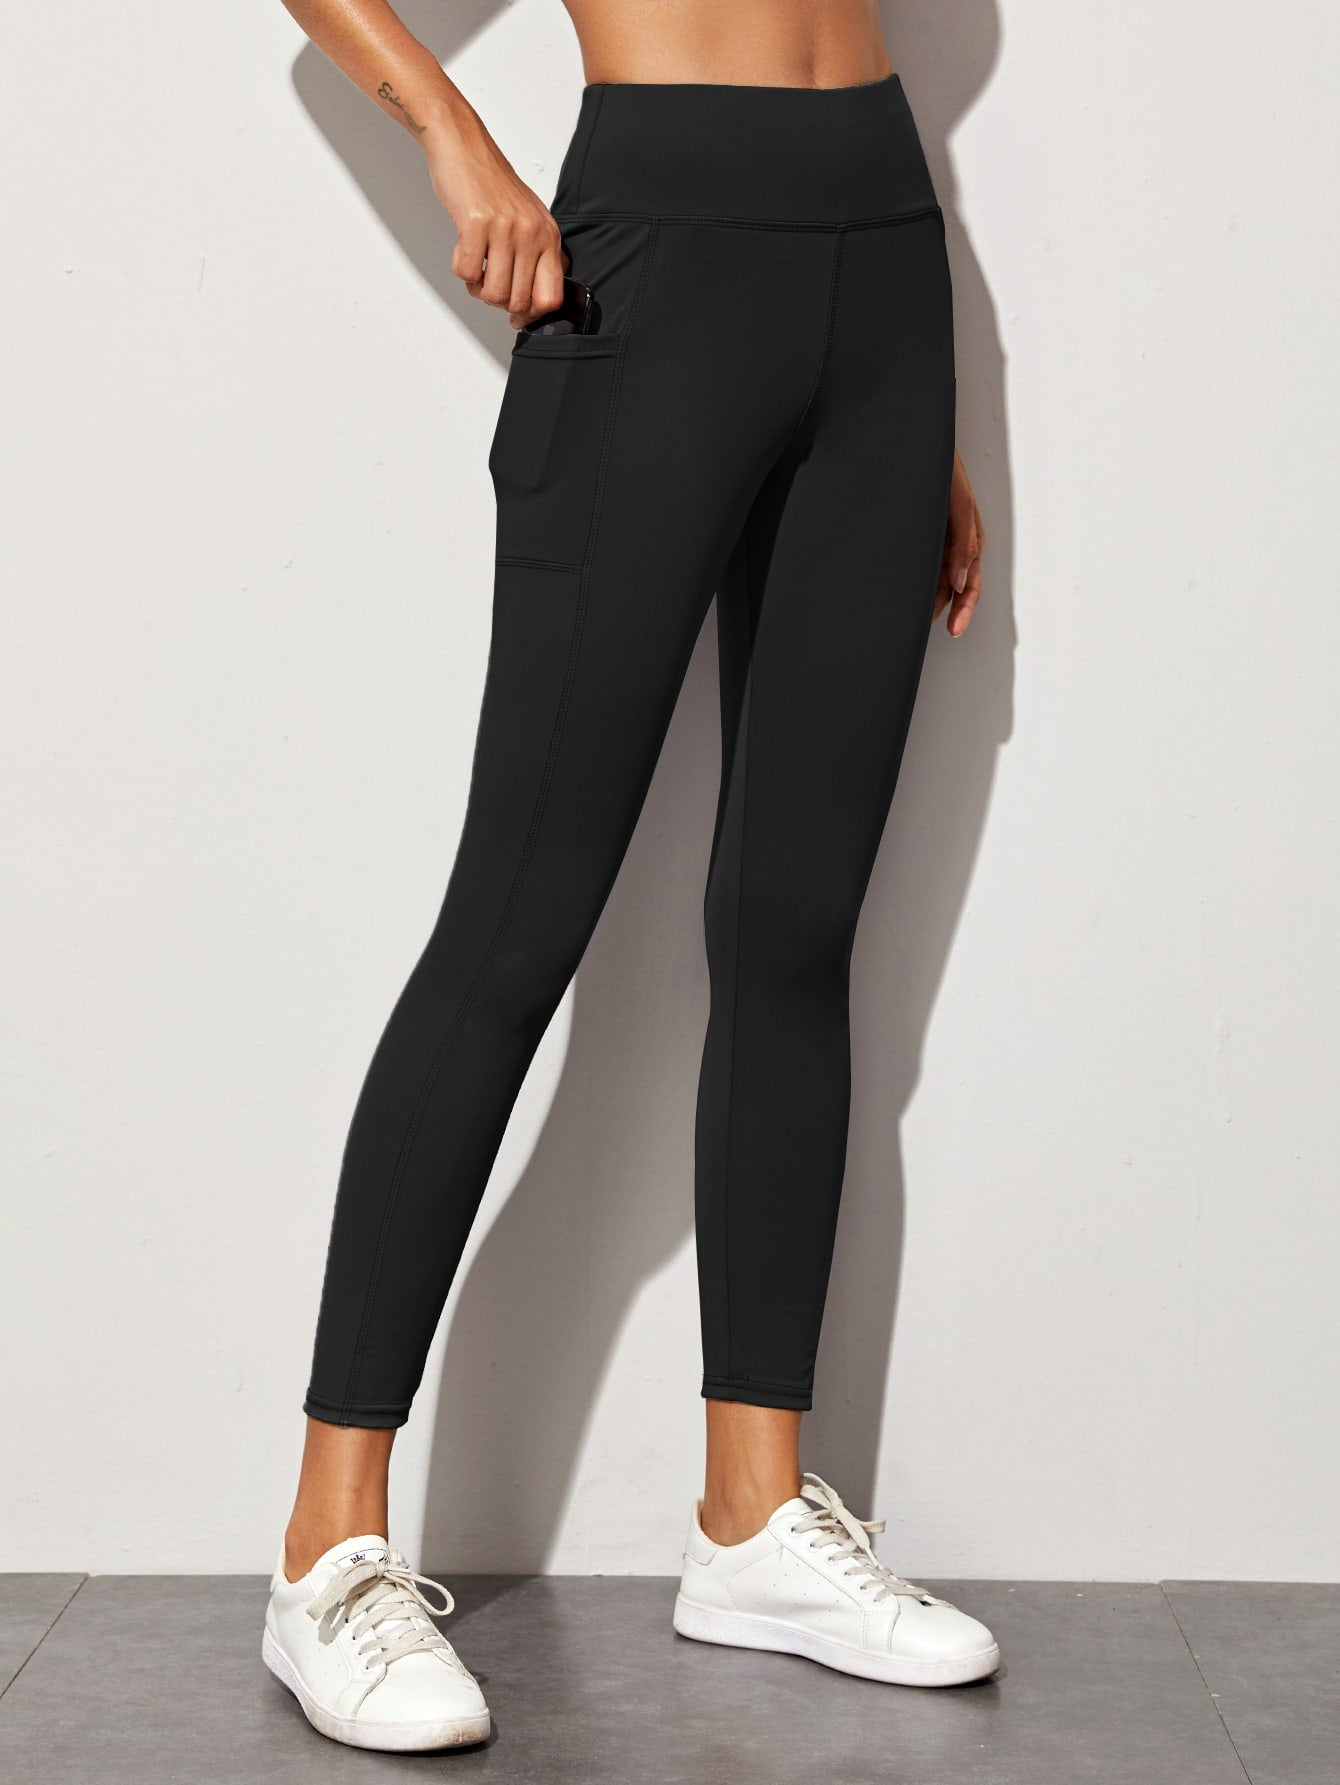 Xena Pocket Legging